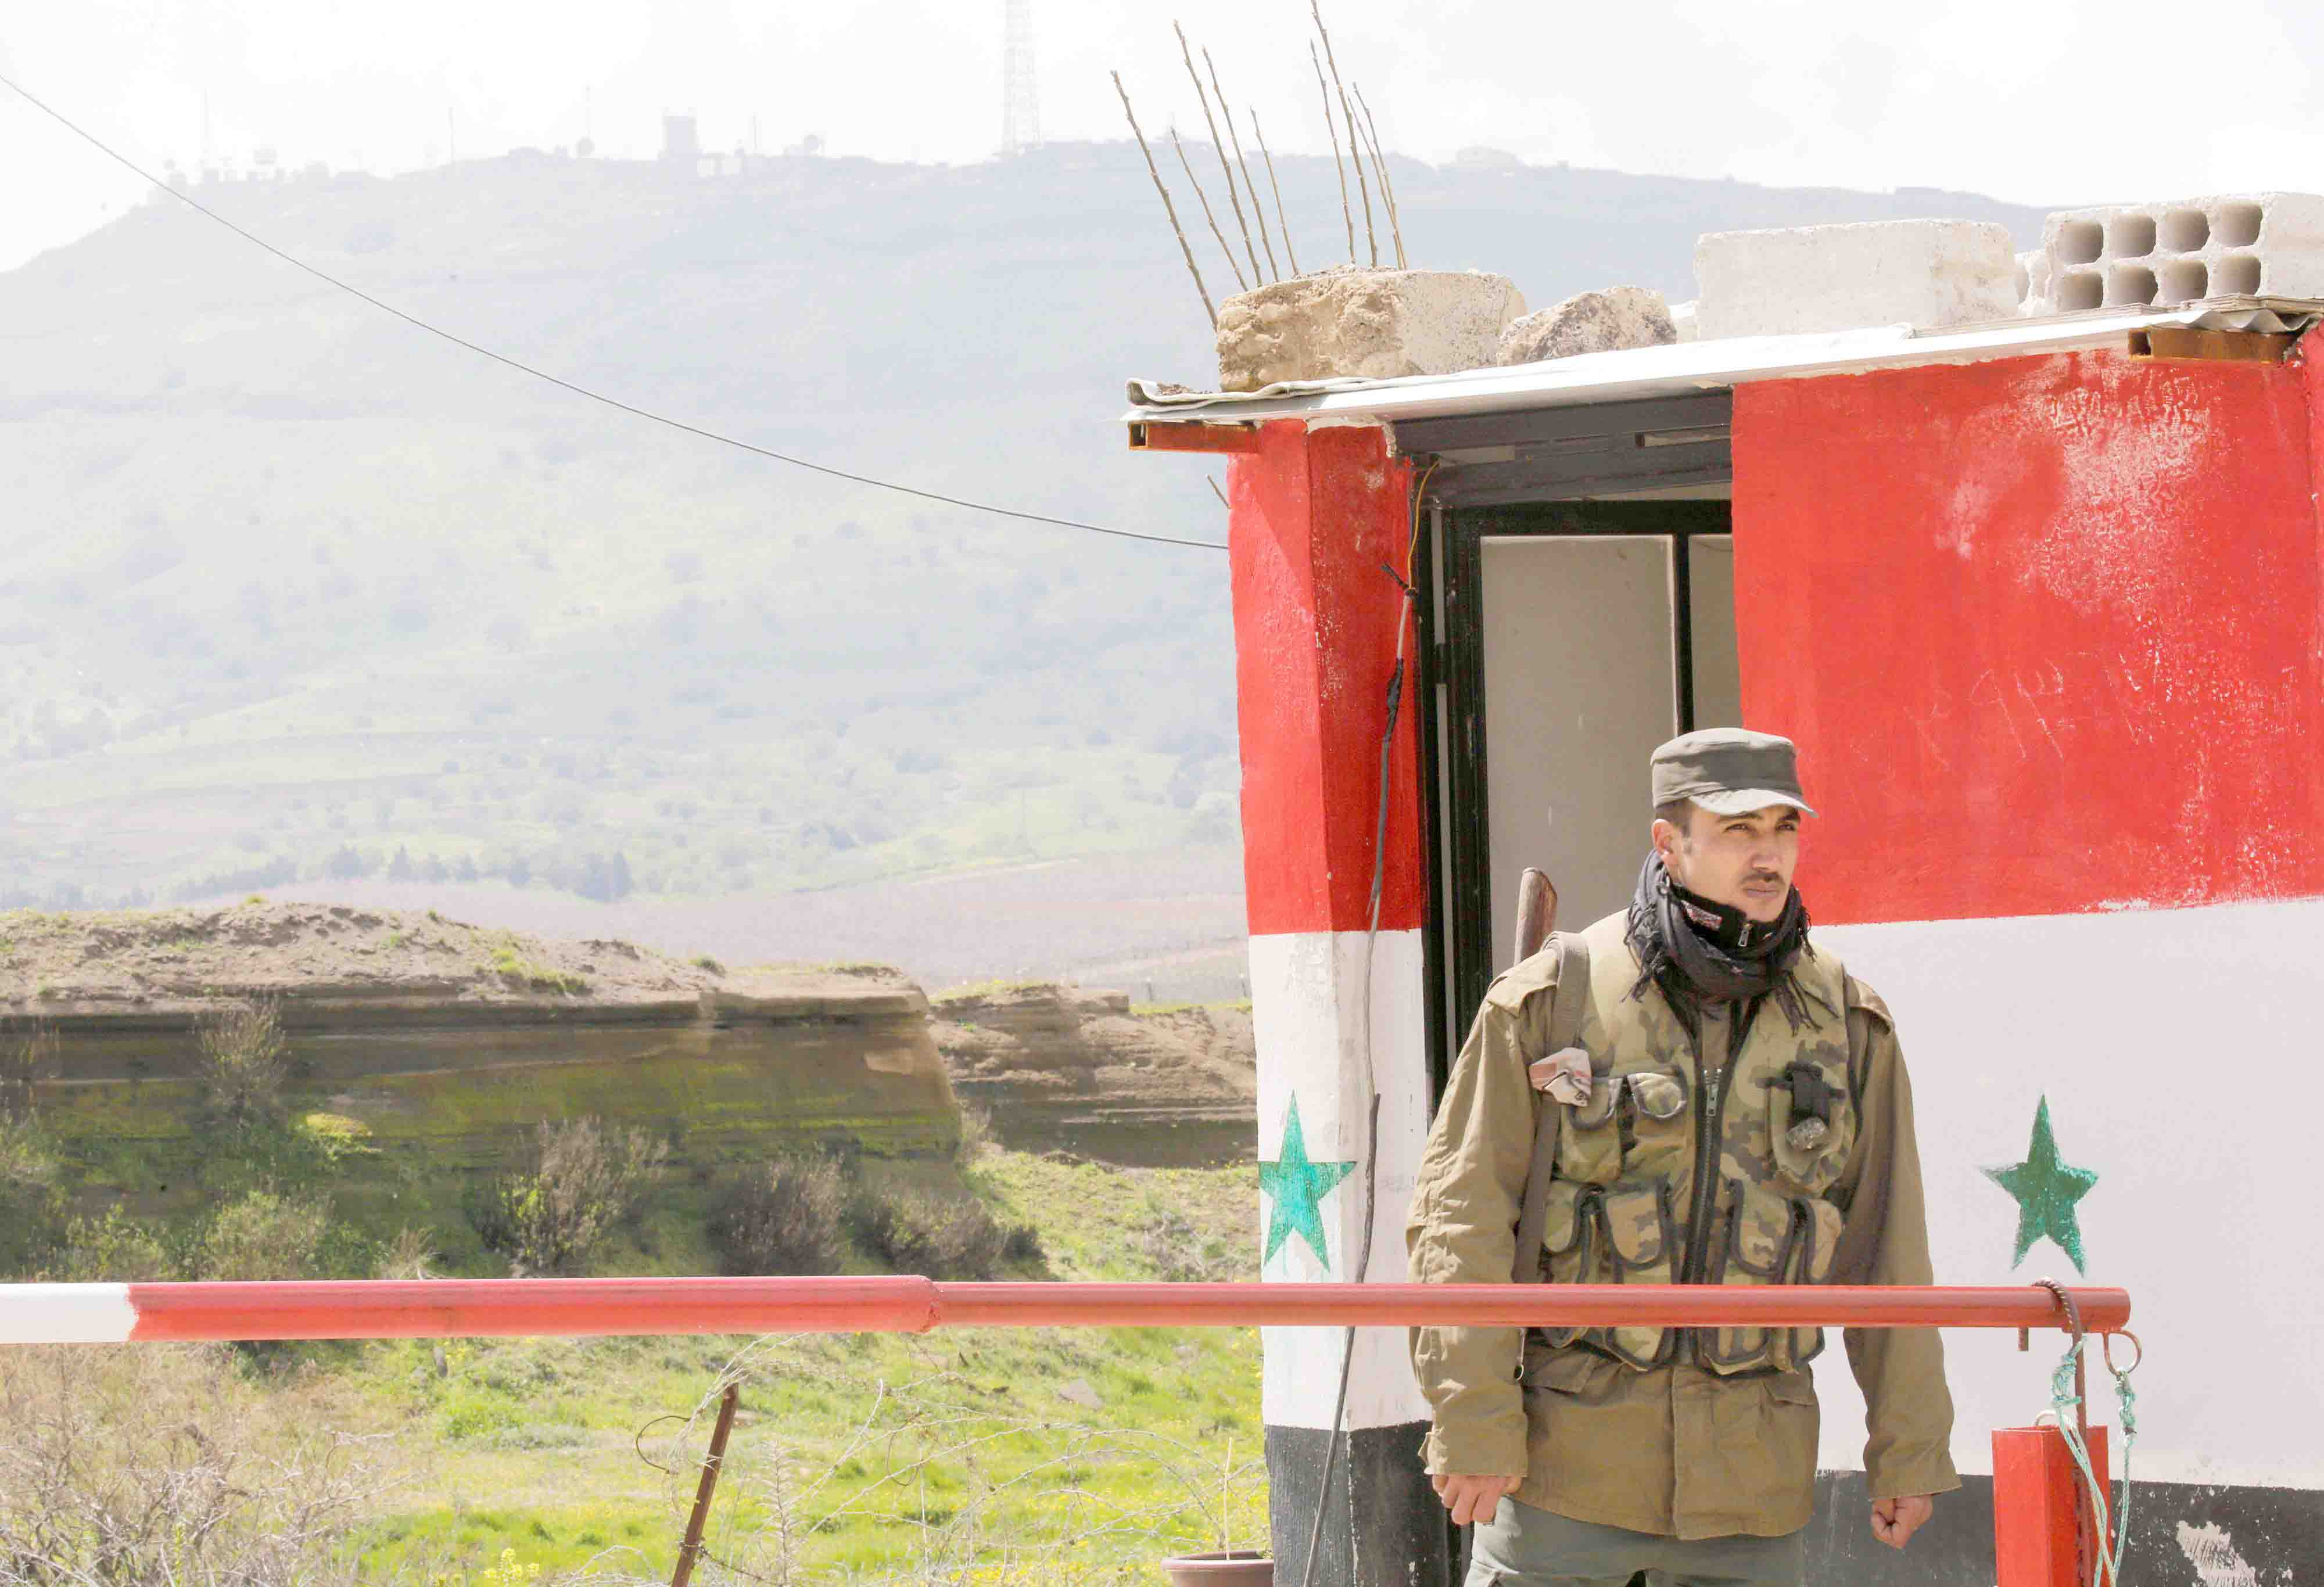 A Syrian Army soldier stands at a checkpoint at the Quneitra Crossing between the Israeli-controlled Golan Heights and Syria, March 26. (Reuters)